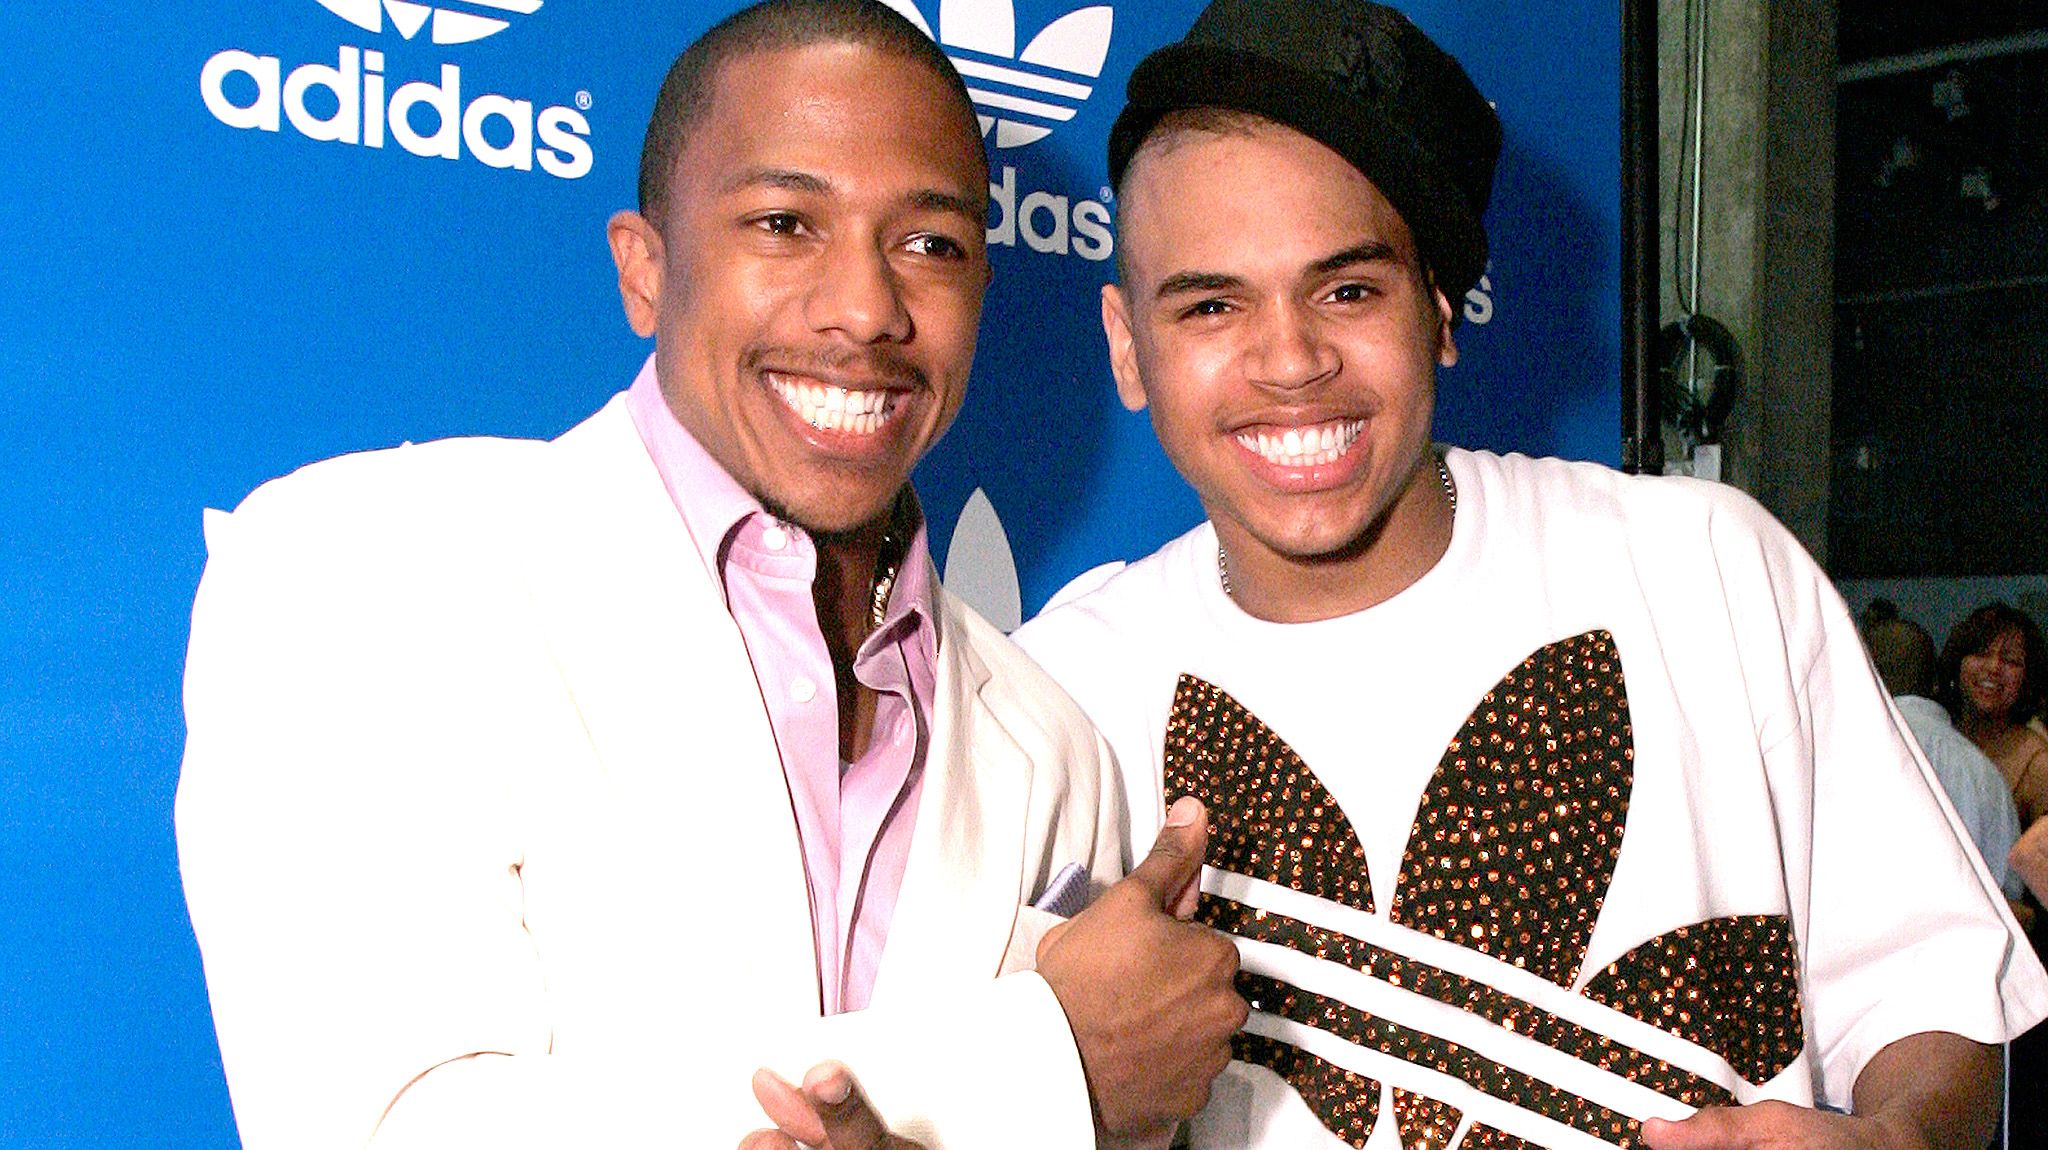 Nick Cannon (L) and Chris Brown